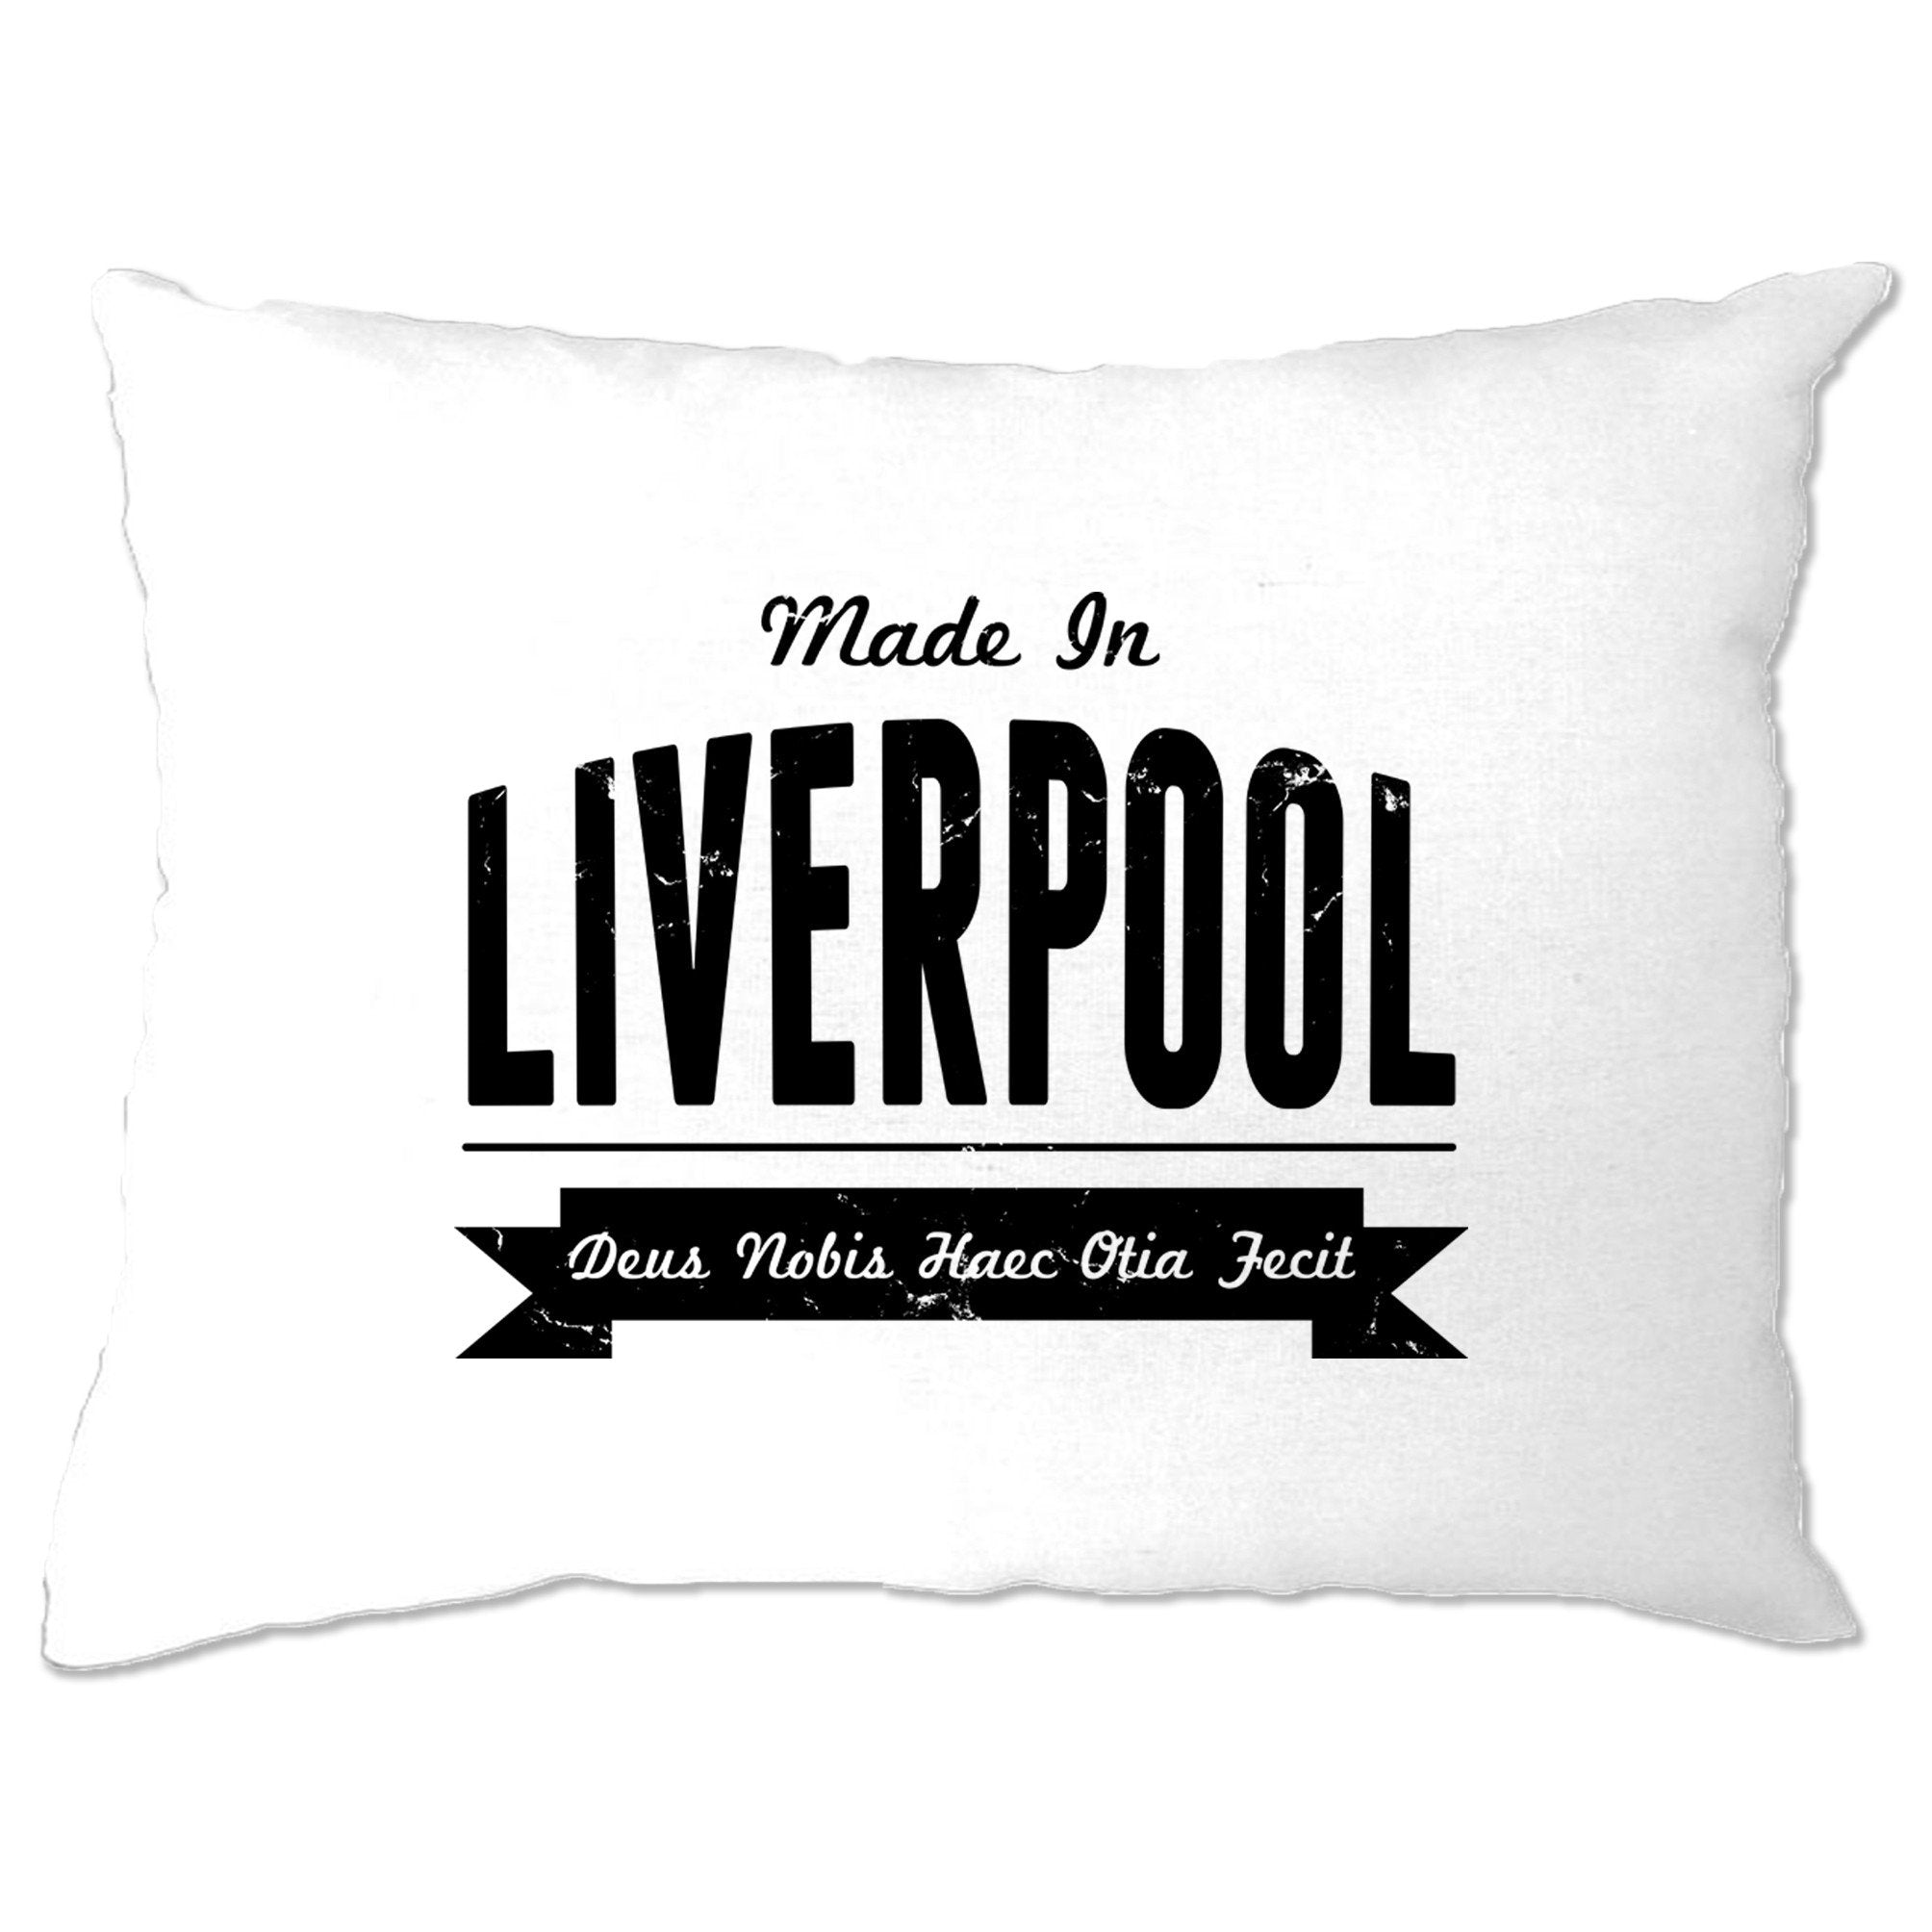 Hometown Pride Pillow Case Made in Liverpool Banner